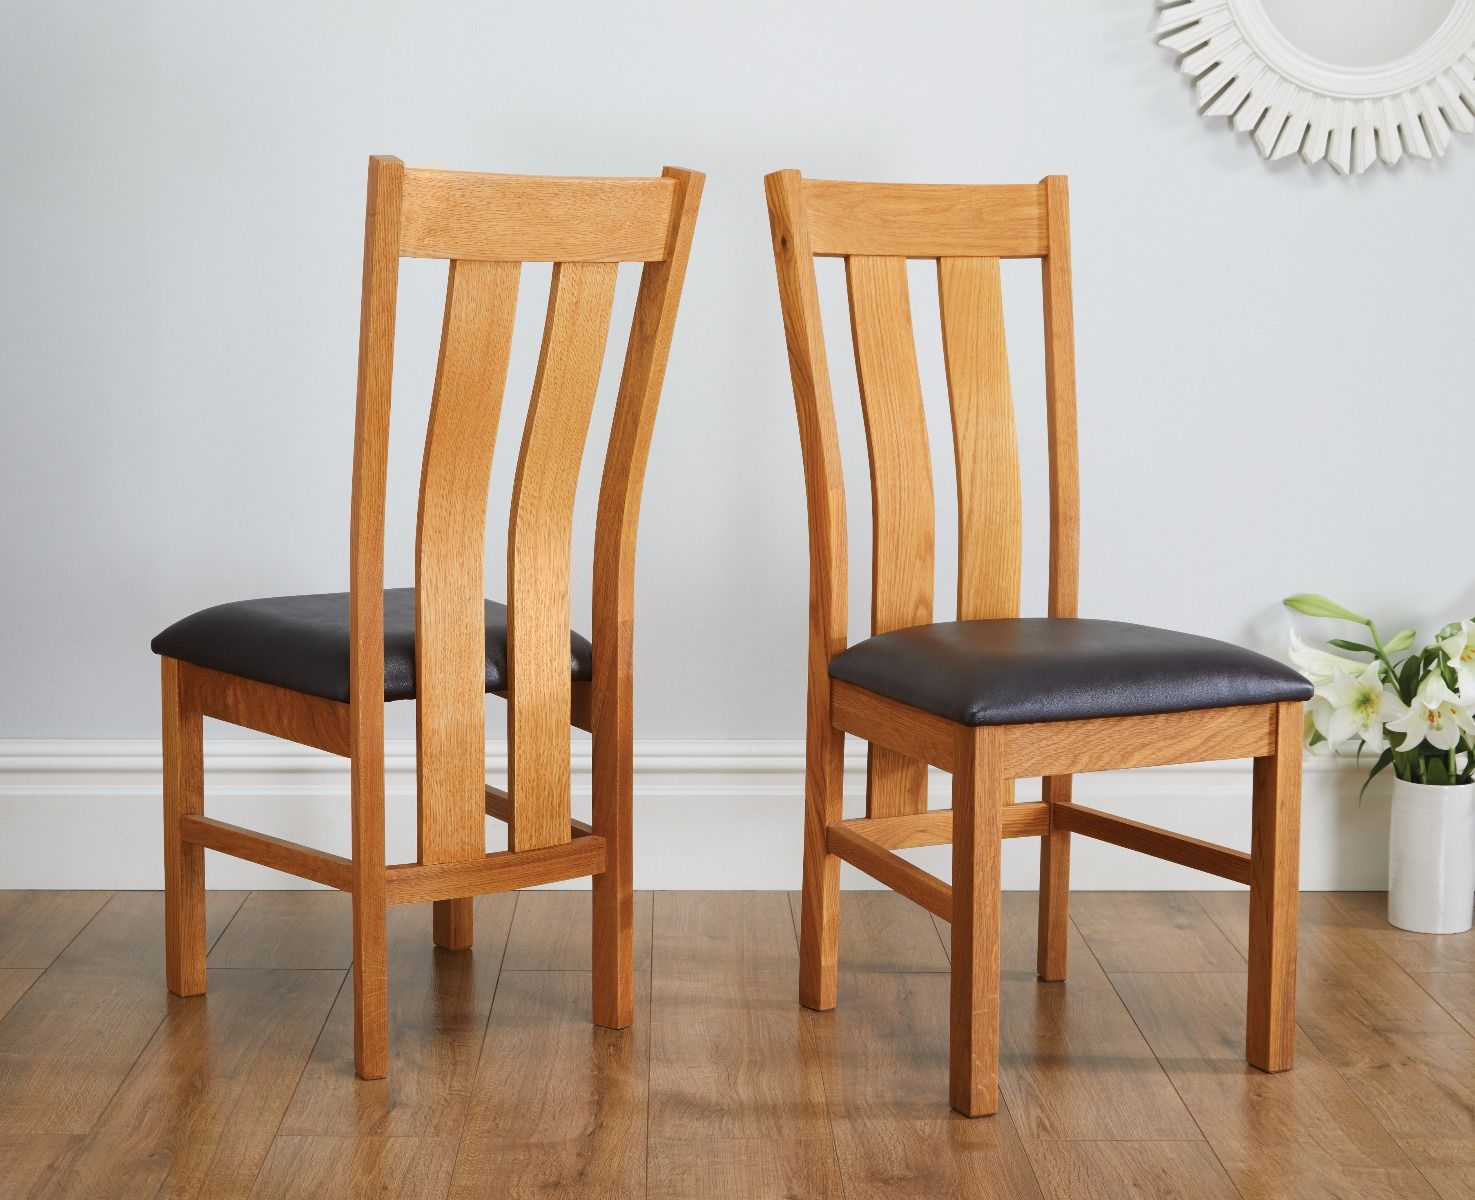 Churchill oak chairs dark brown leather seat pads